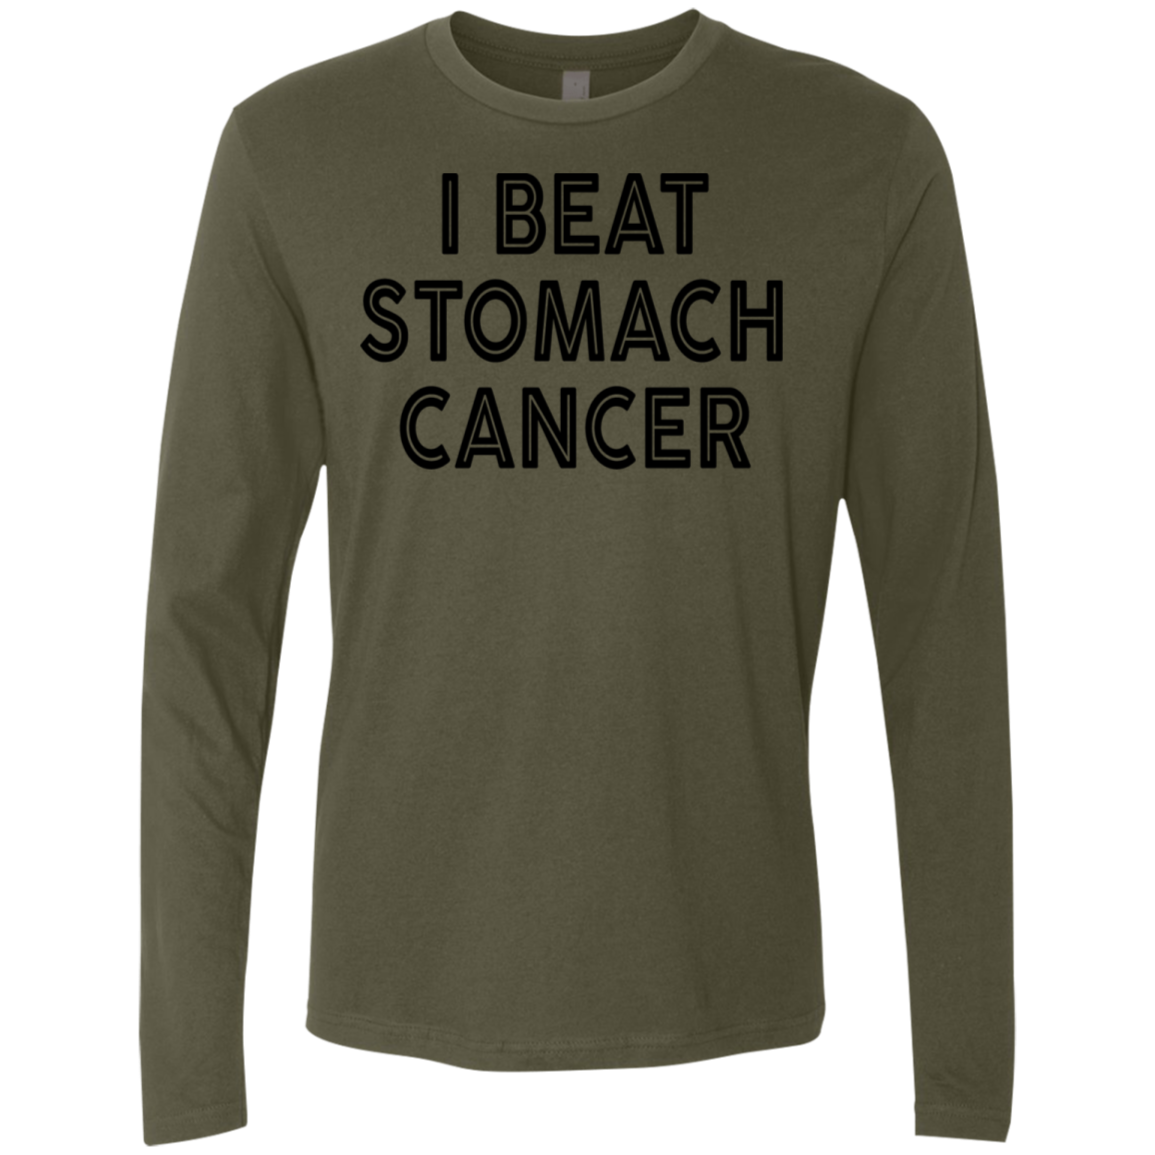 I Beat Stomach Cancer Men's Long Sleeve Tee